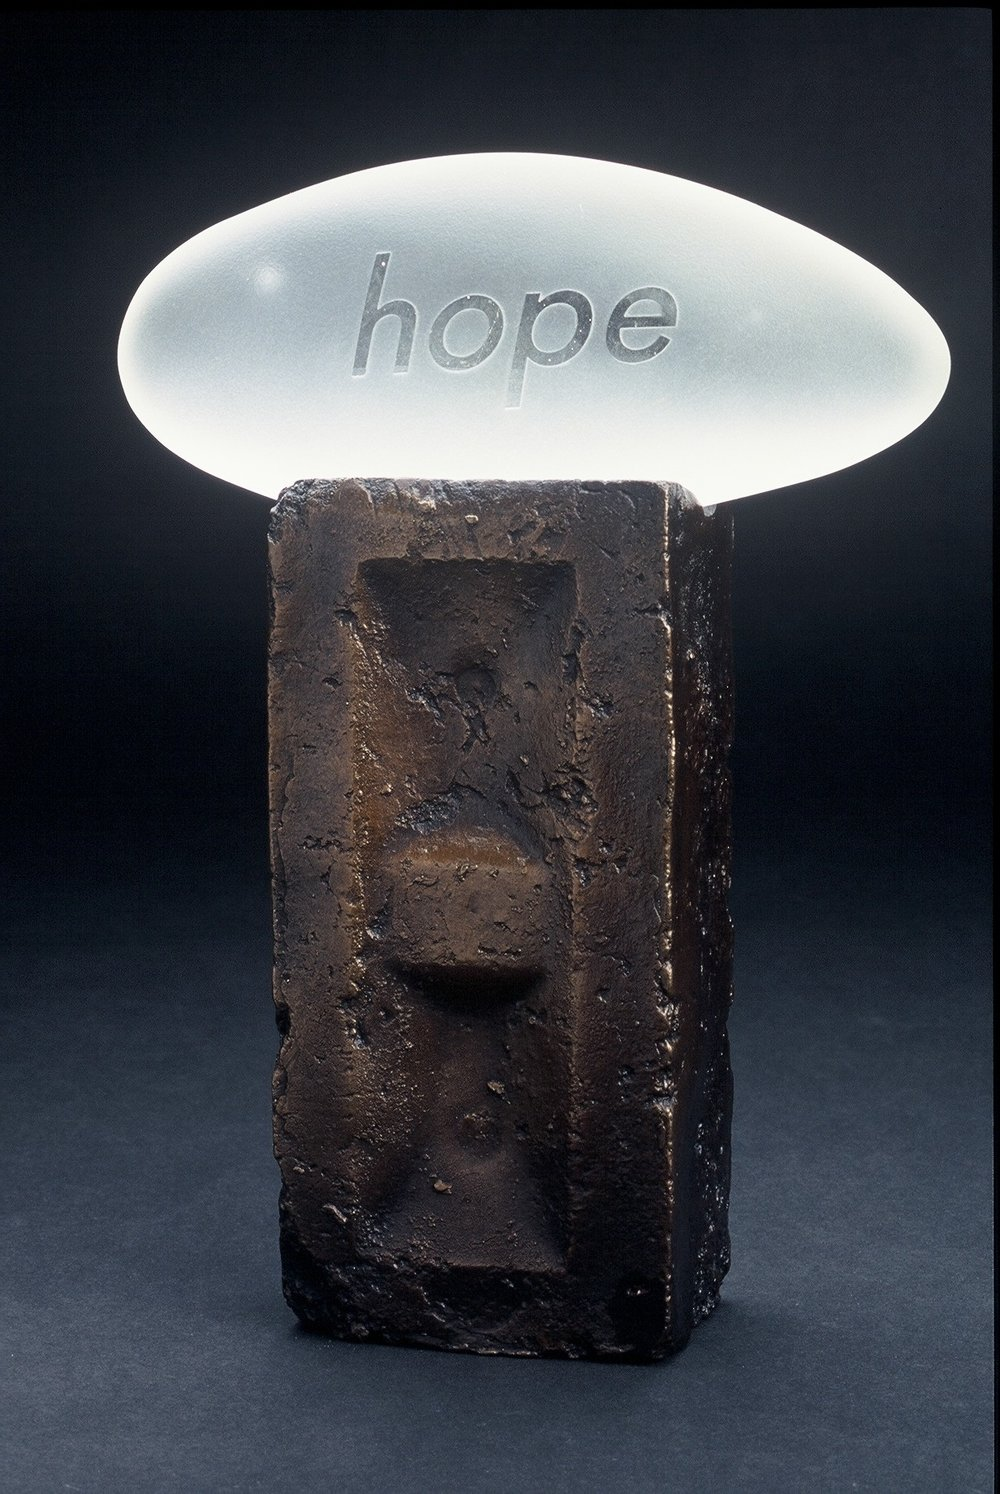 B. Jane Cowie, hope, 2003.JPG